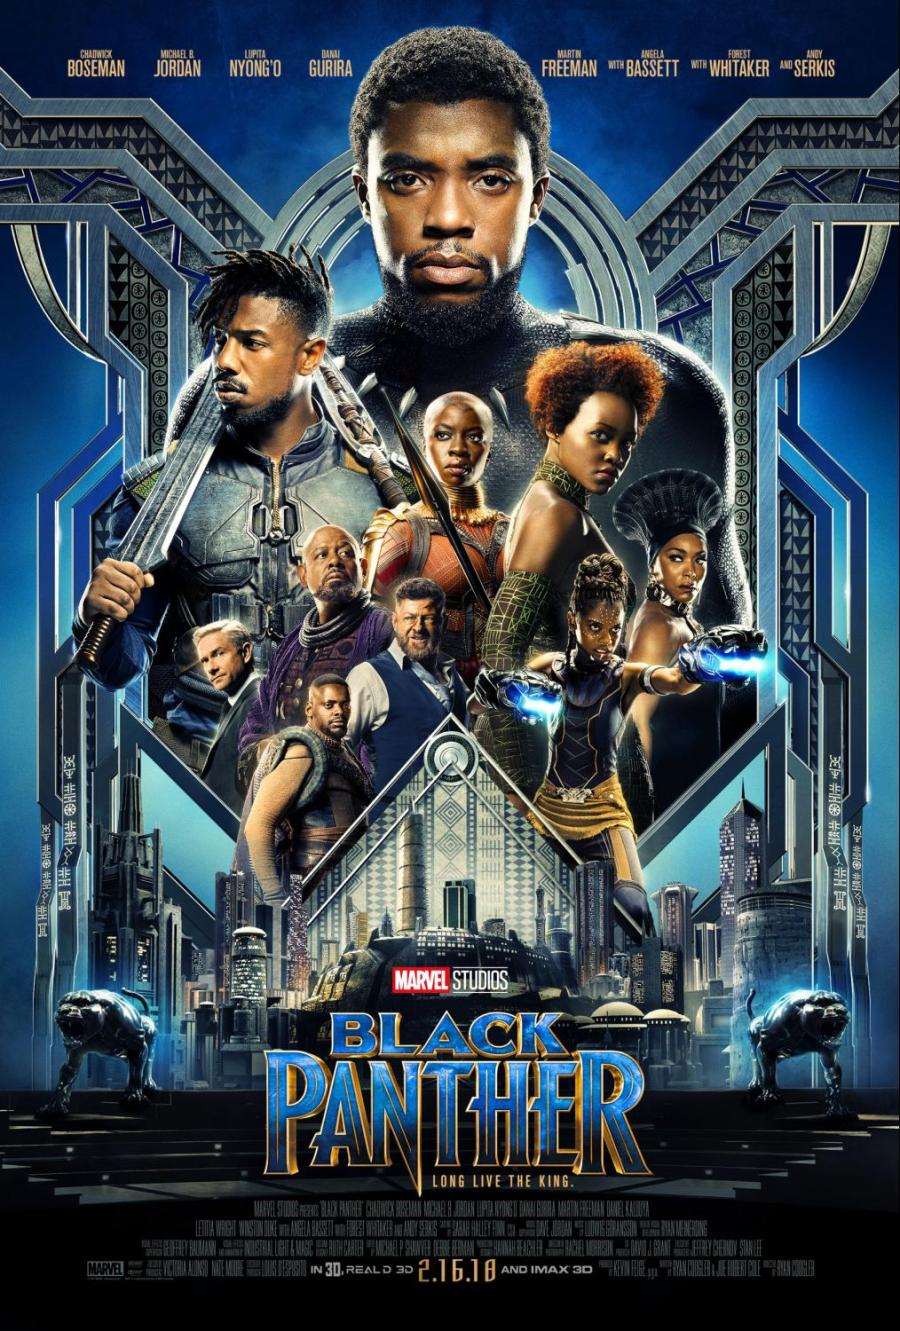 BlackPanther poster